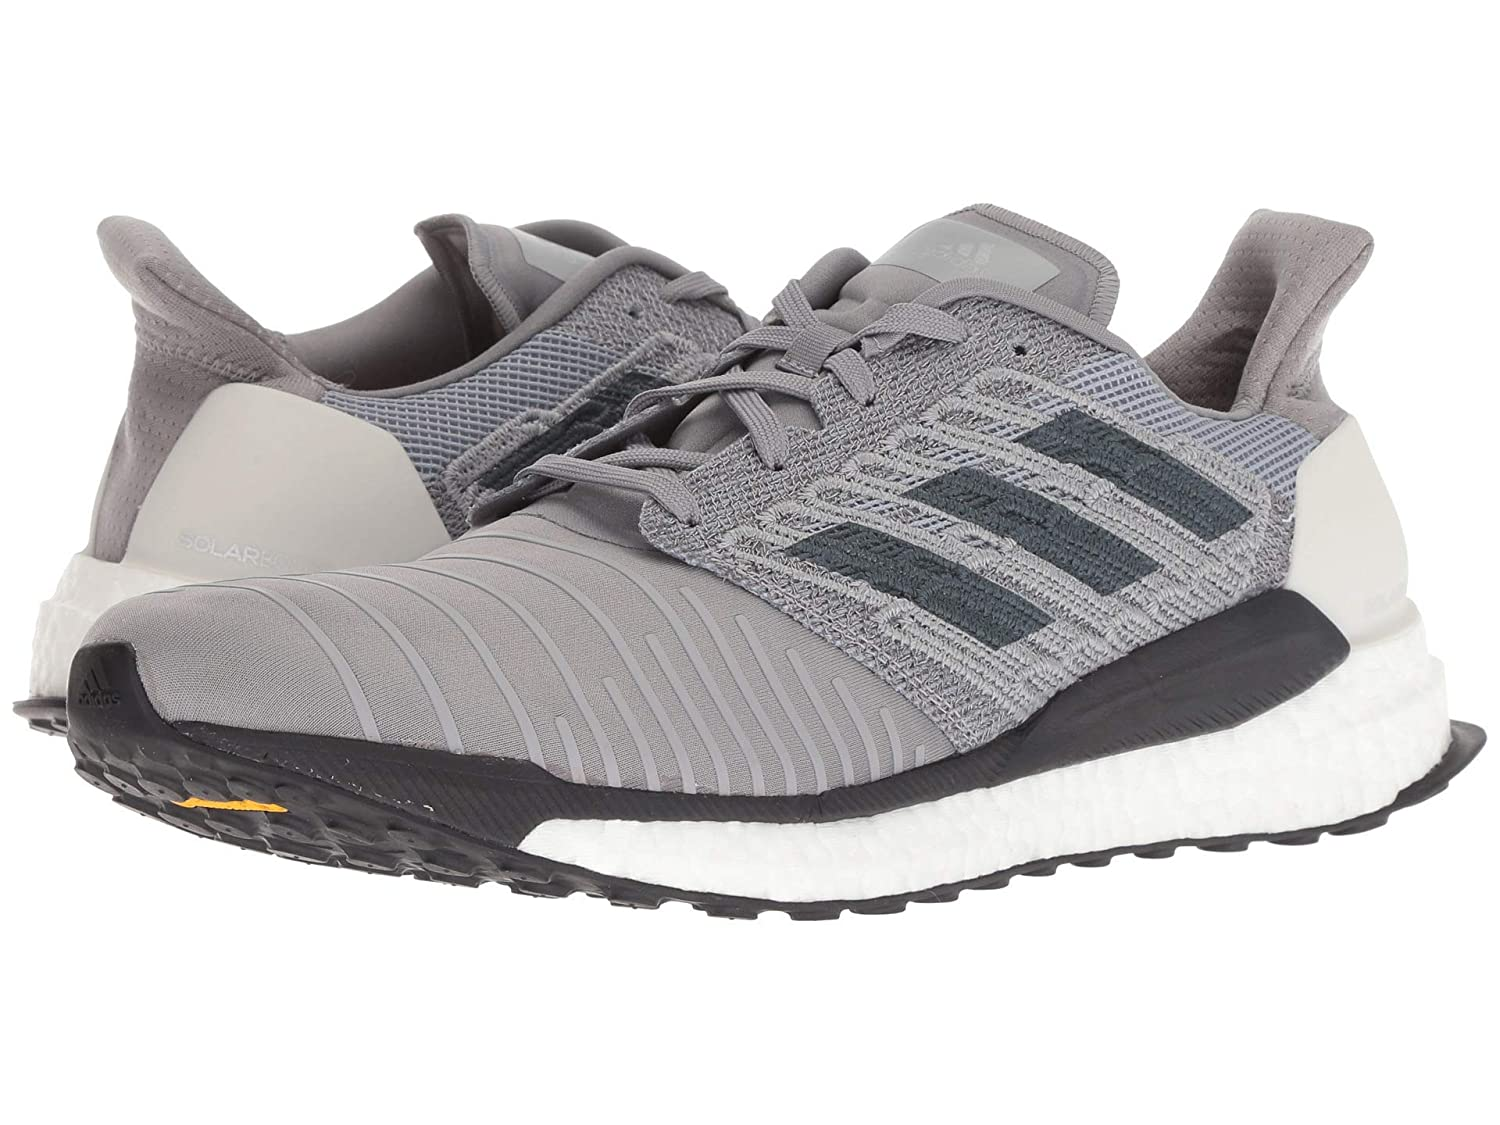 【正規通販】 [アディダス] メンズランニングシューズスニーカー靴 One Solar Boost [並行輸入品] B07L6W3NFW Grey Three One/Bold D Onix/Grey One 26.0 cm D 26.0 cm D|Grey Three/Bold Onix/Grey One, 魅力の:2e291f84 --- a0267596.xsph.ru